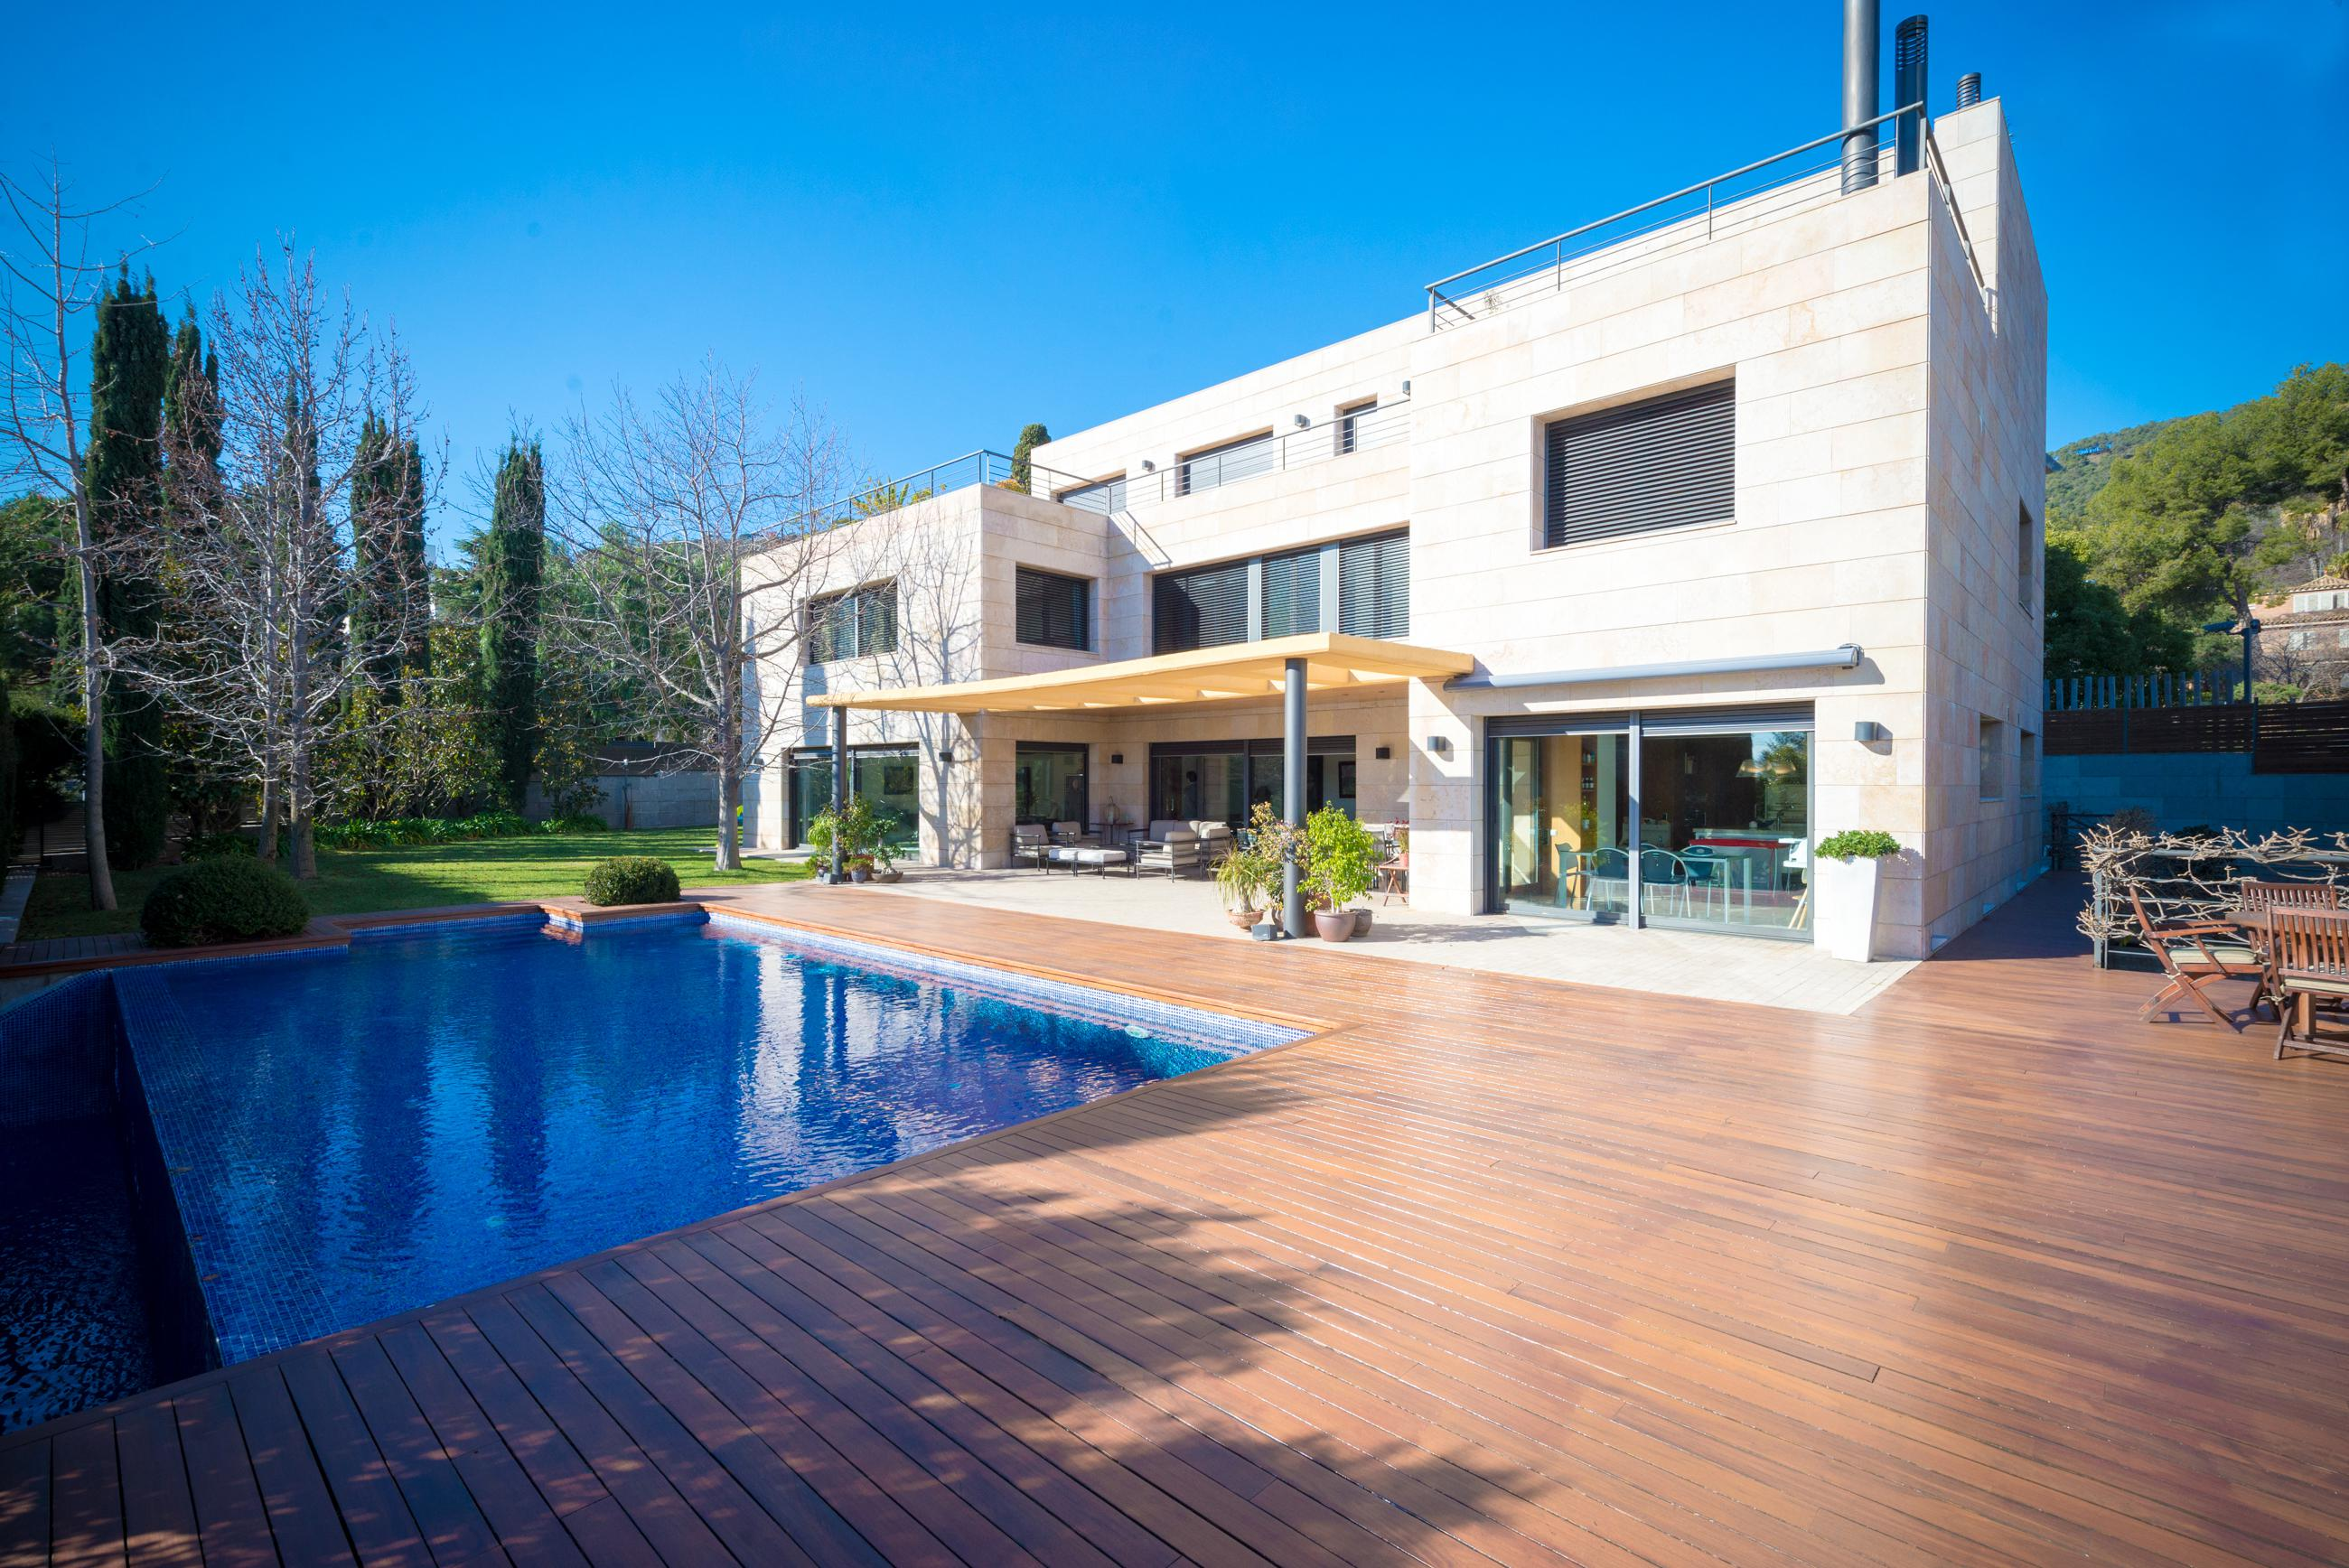 251384 Detached House for sale in Les Corts, Pedralbes 1